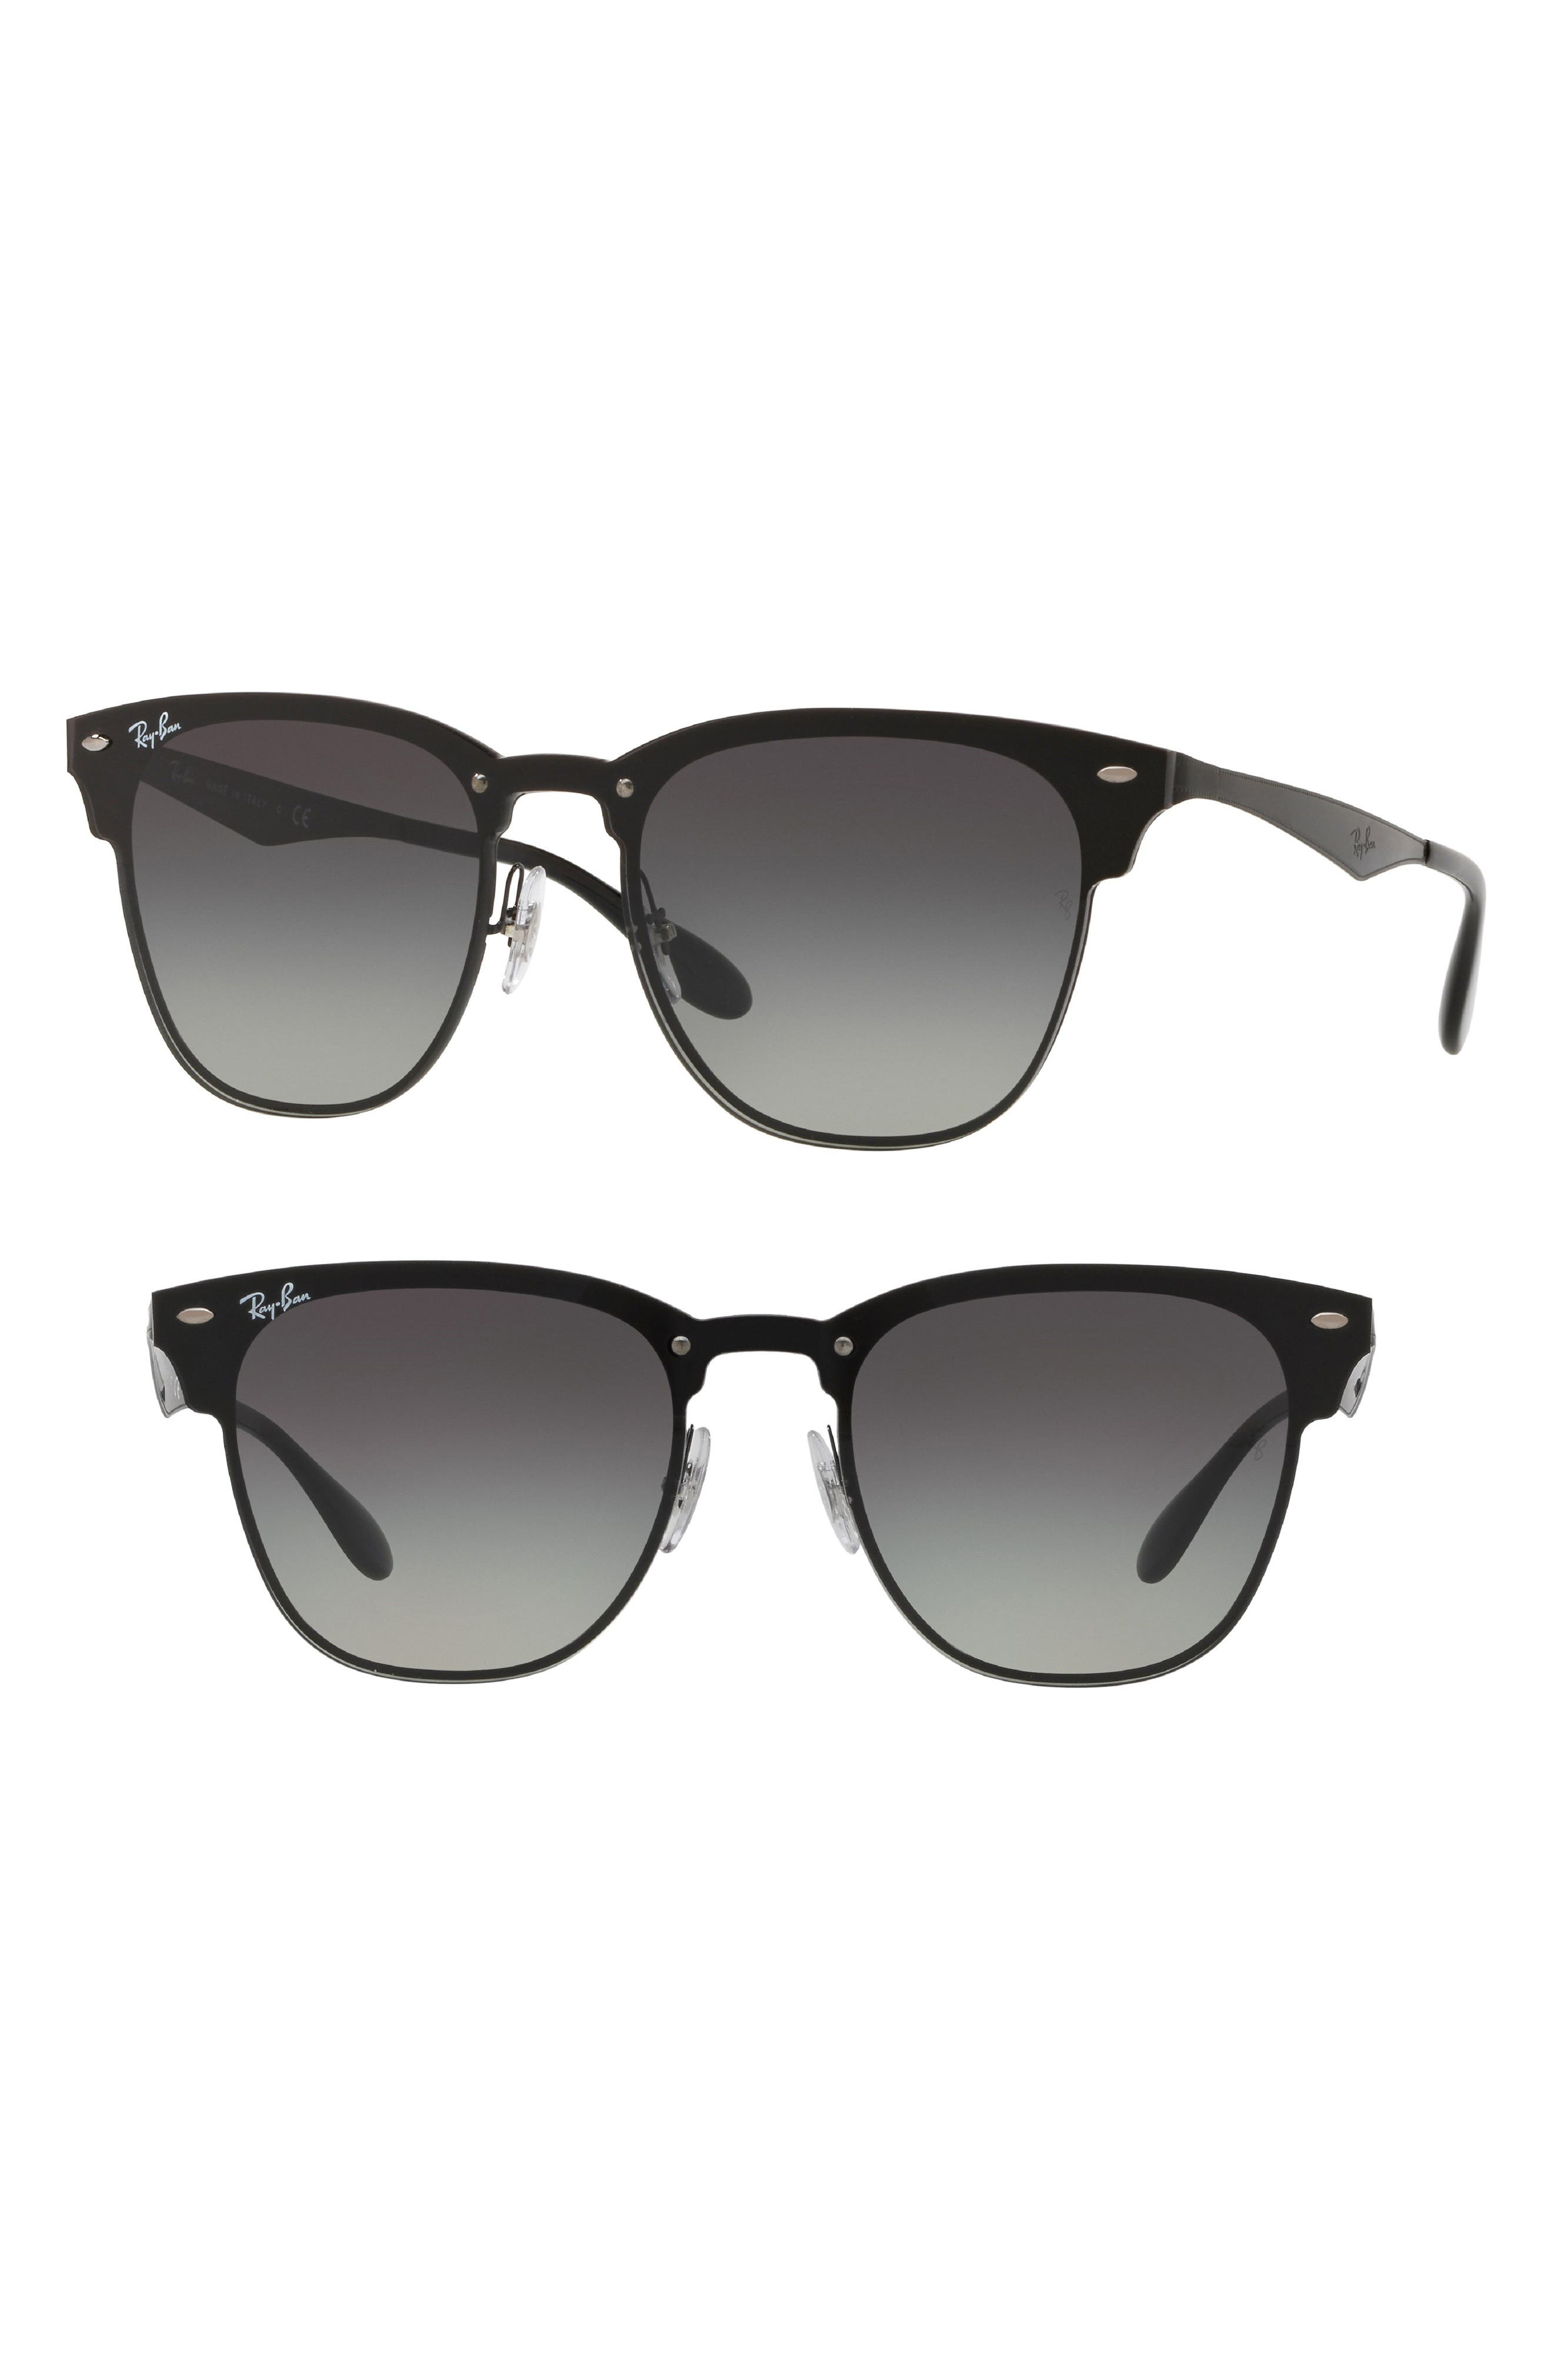 Ray-Ban Clubmaster Sunglasses | Nordstrom